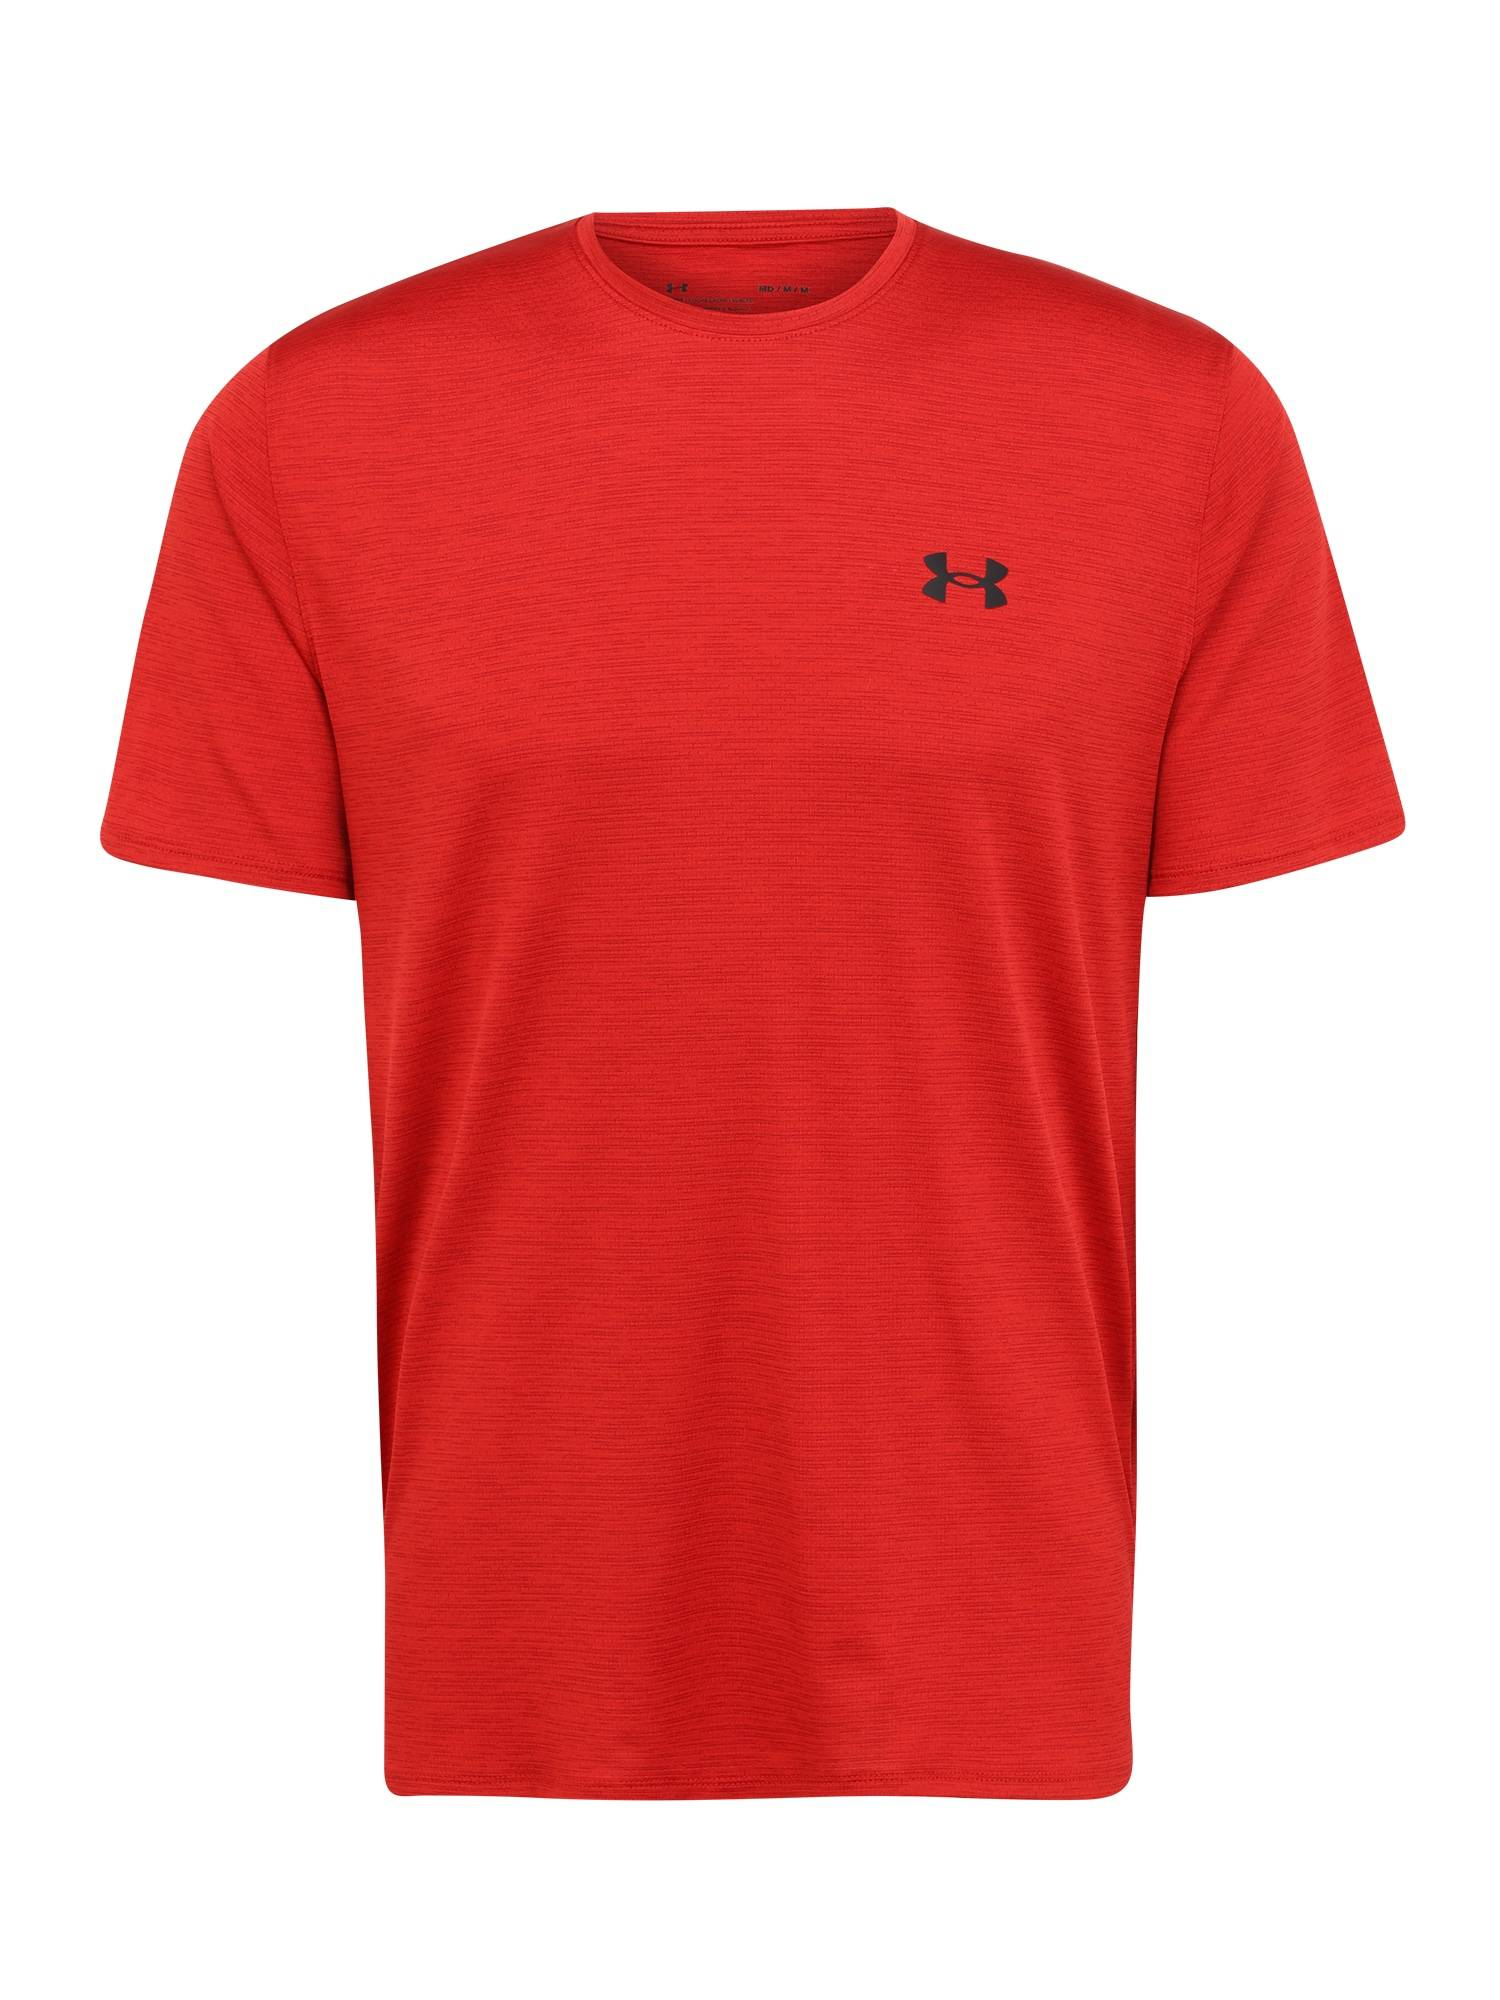 UNDER ARMOUR T-Shirt fonctionnel 'Train'  - Rouge - Taille: L - male